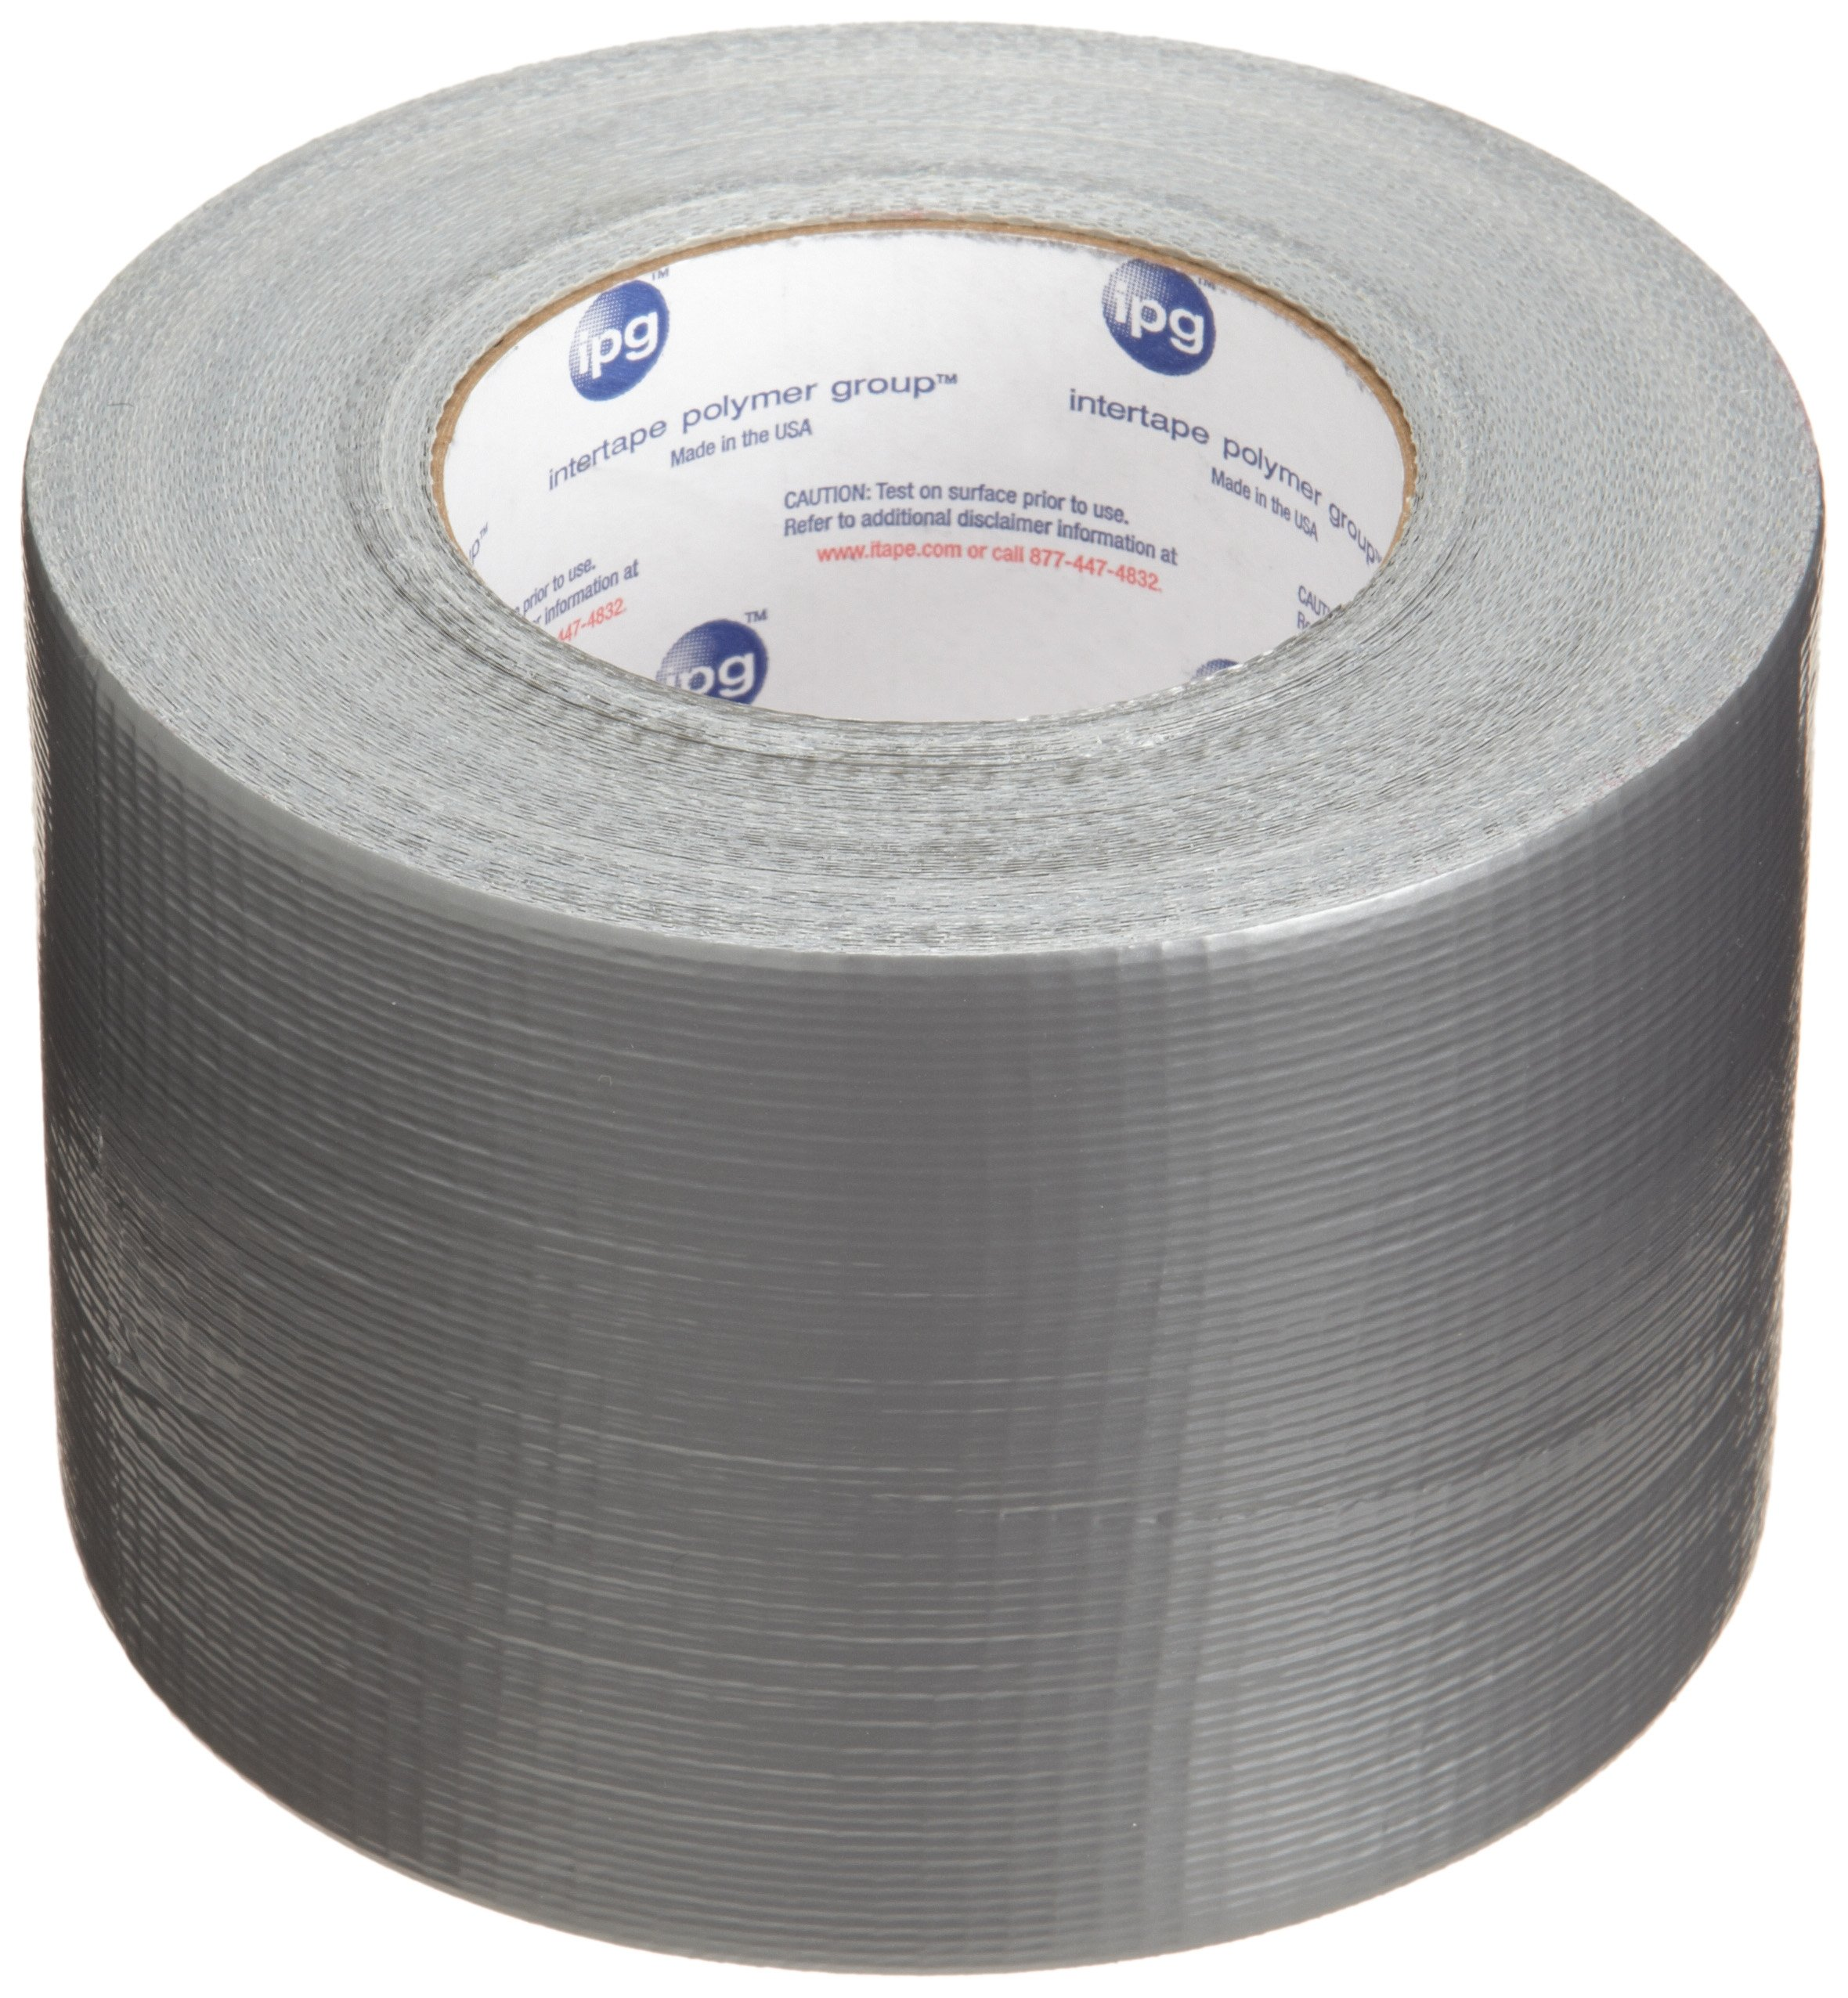 Intertape Polymer Group 4398 DUCTape, 3.77-Inch x 60-Yard by Intertape Polymer Group